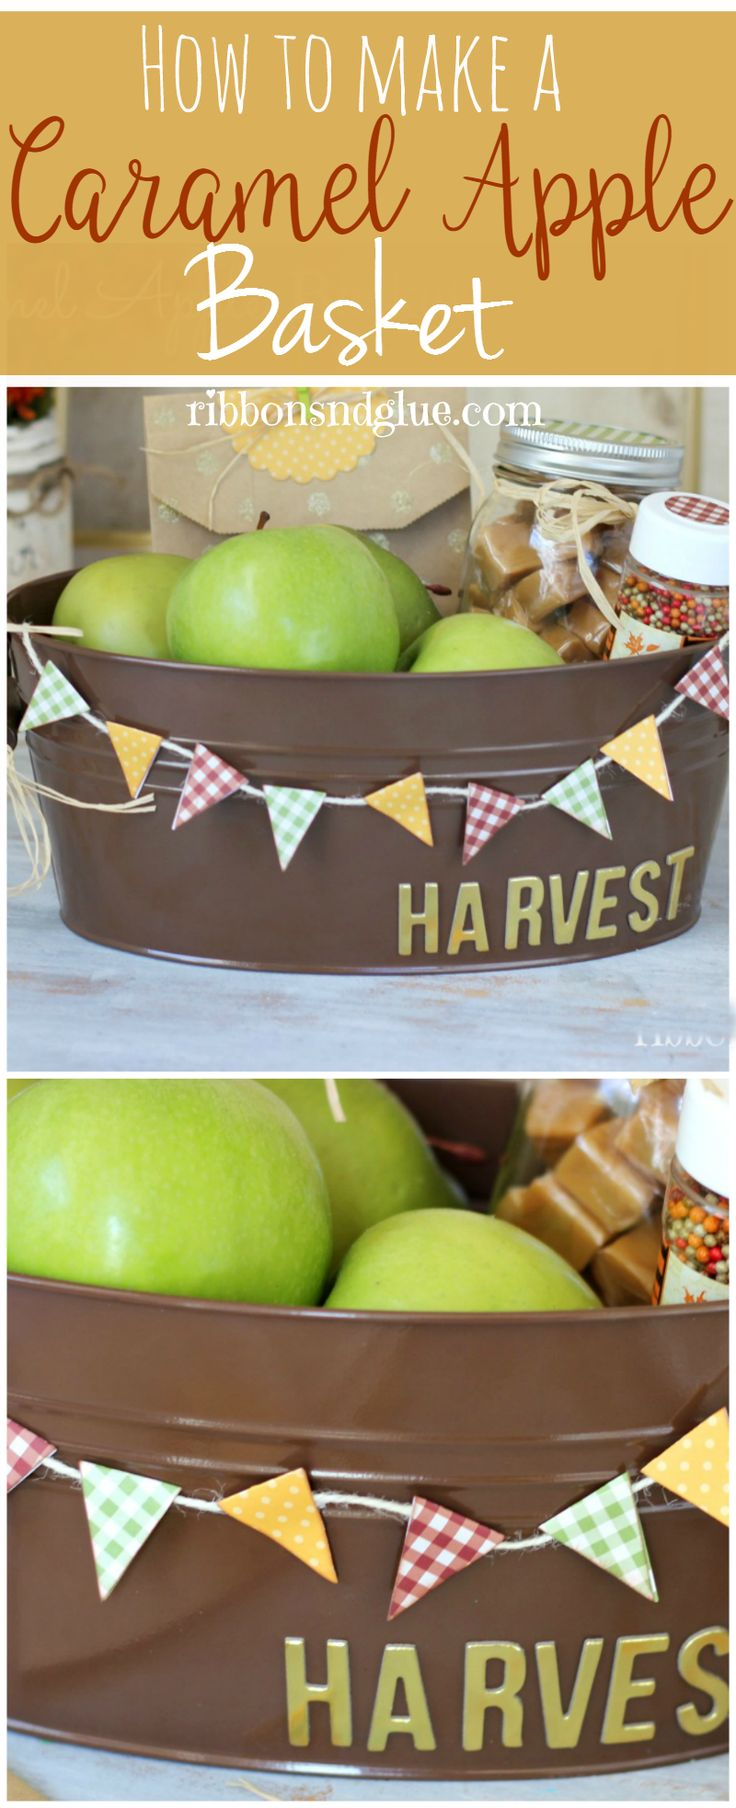 This Fall Caramel Apple Gift Basket  idea contains everything you would need to make your own Fall apple basket  for friends and neighbors.